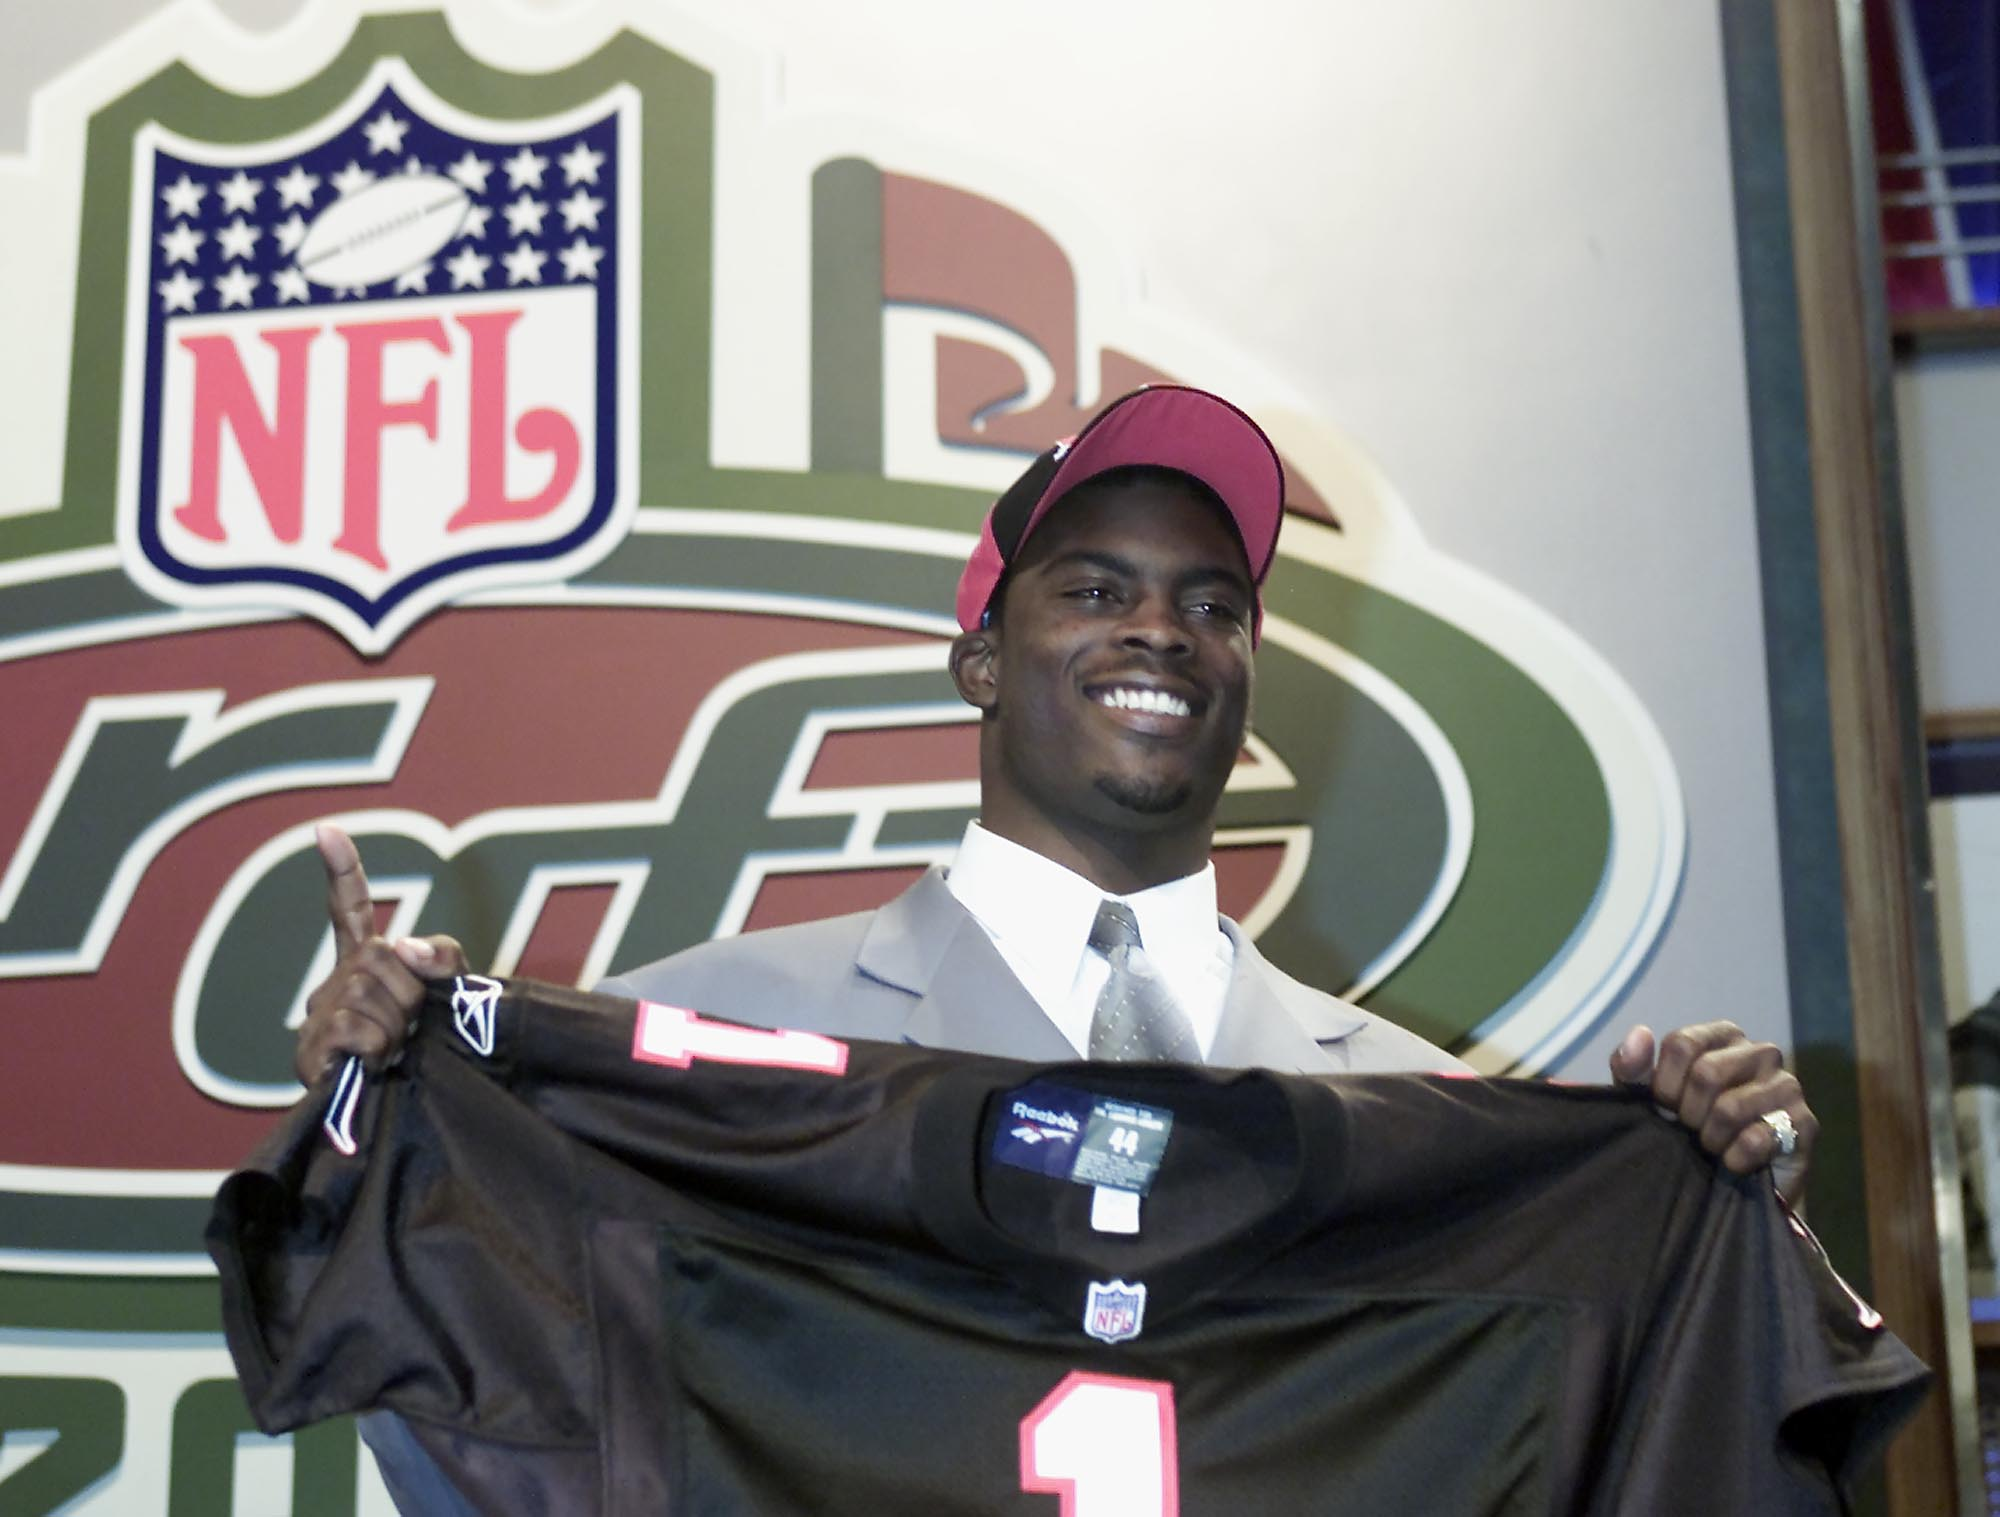 Michael Vick smiles after the Falcons pick him in the 2001 NFL draft